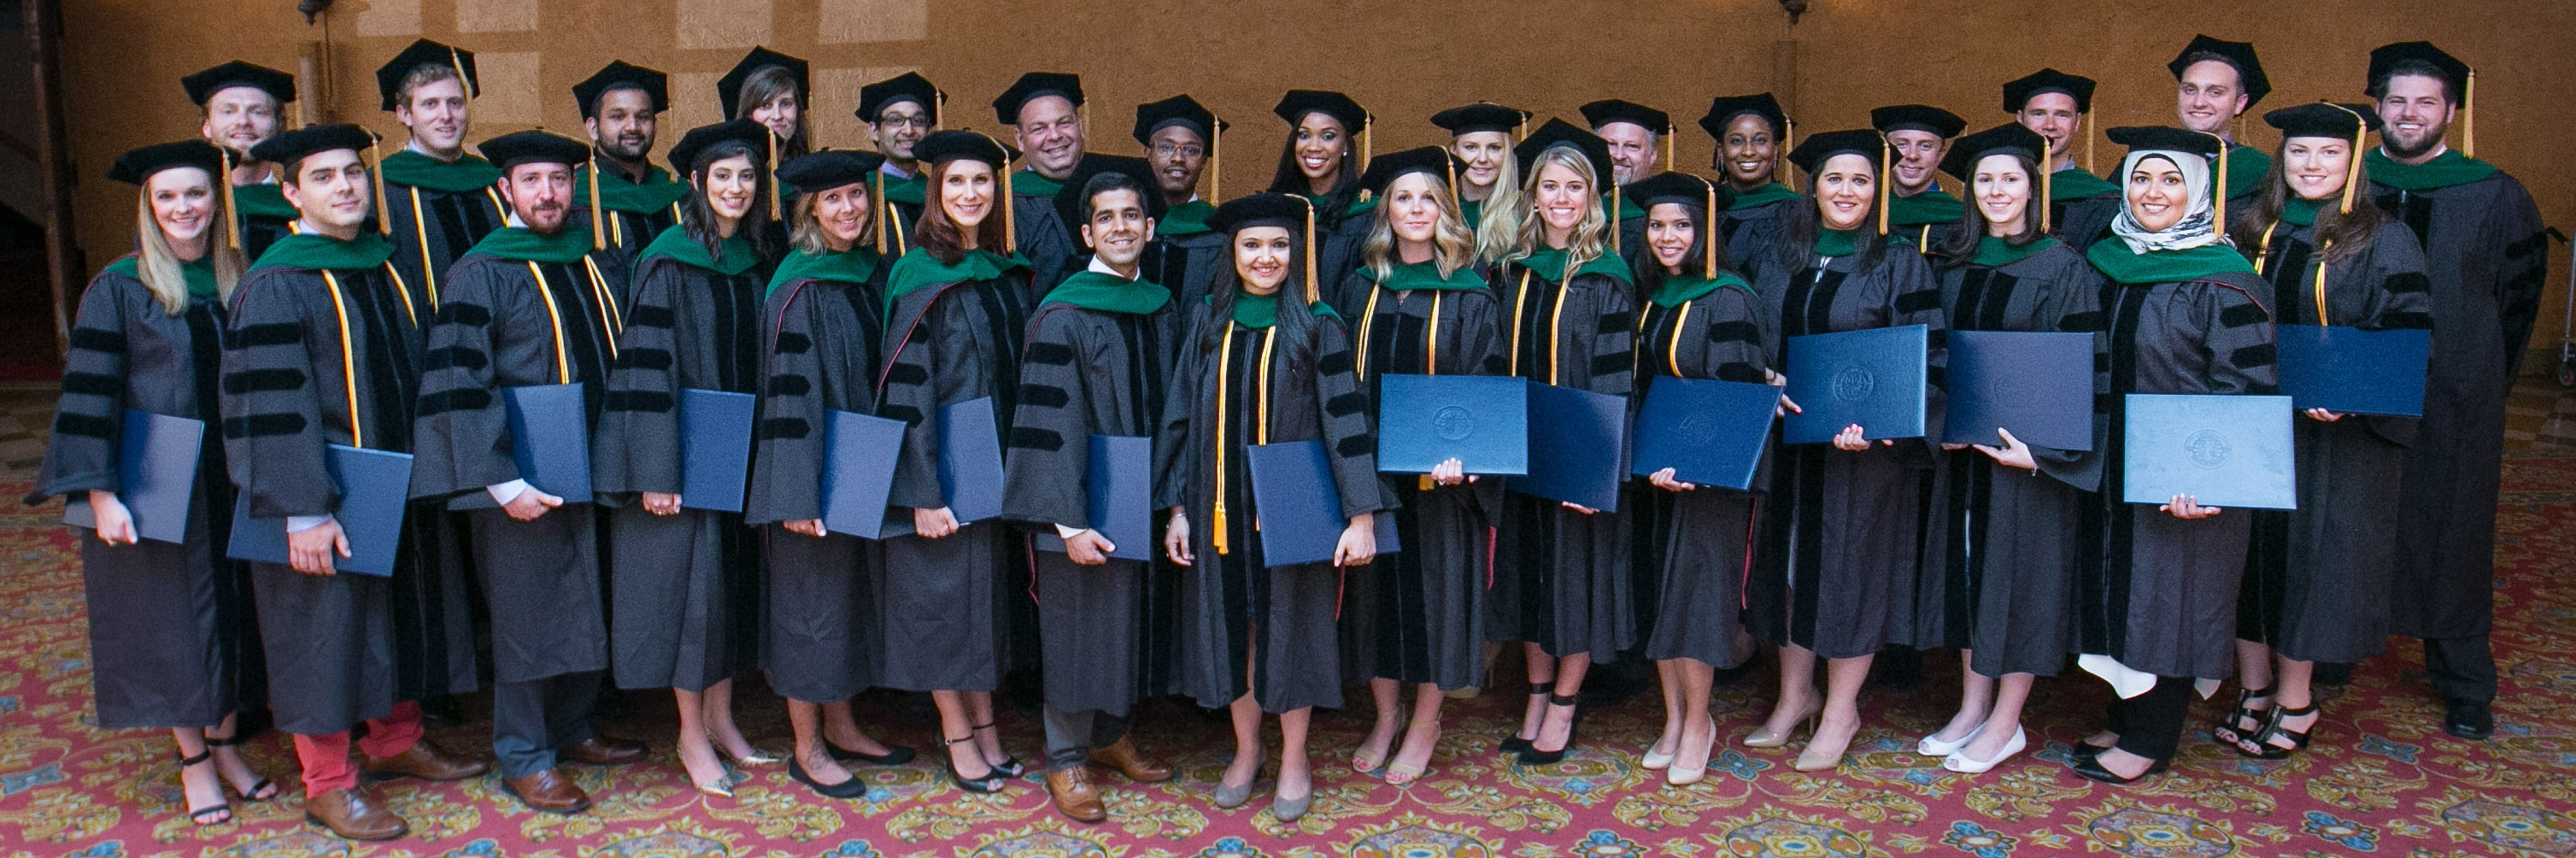 Trinity School of Medicine 2016 Graduate Physicians